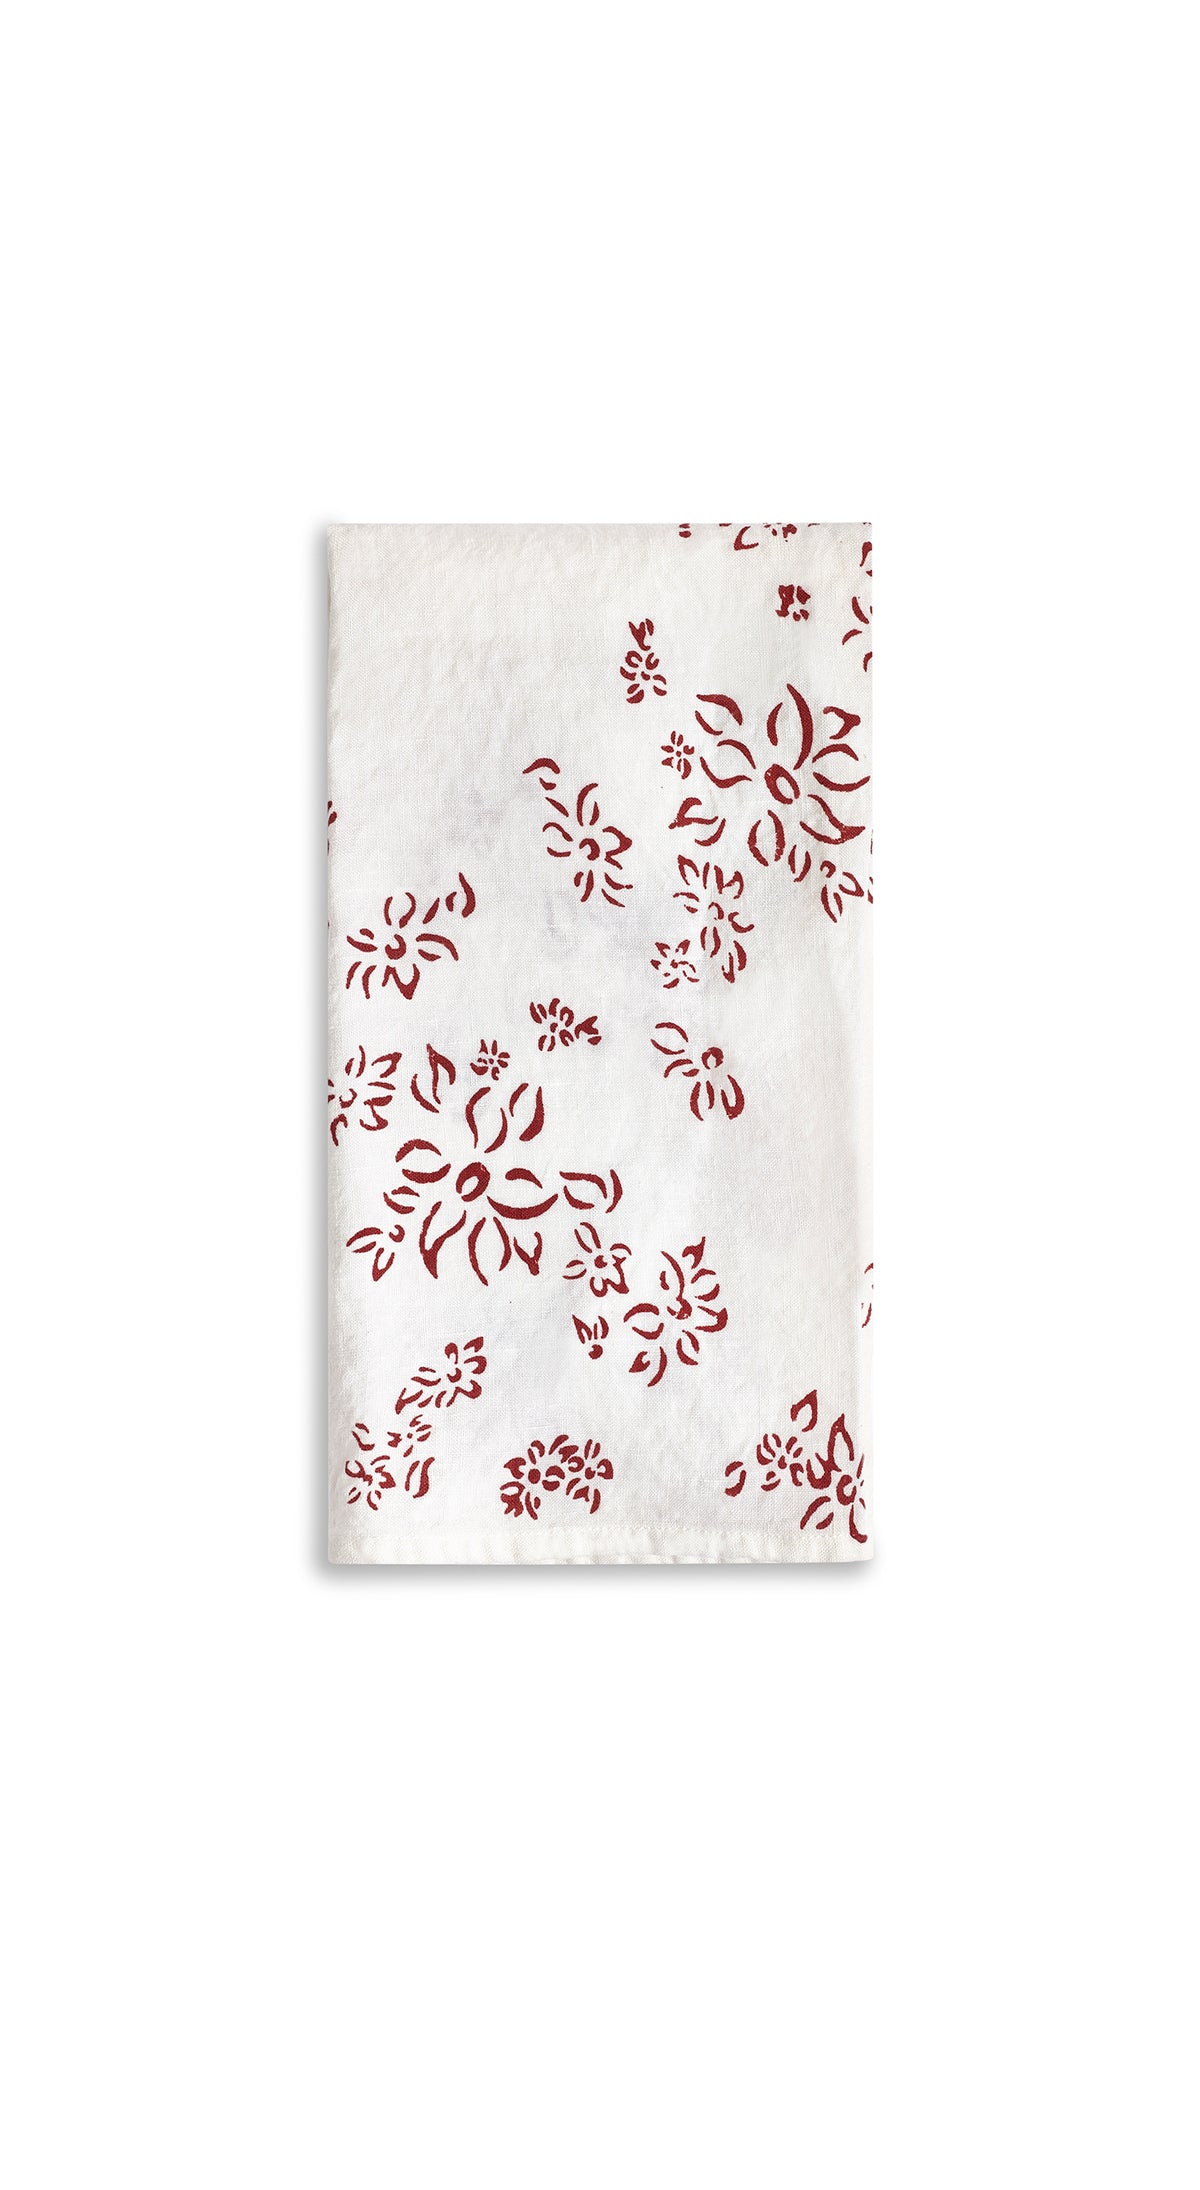 Bernadette's Hand Stamped Falling Flower Linen Tea Towel in Claret Red